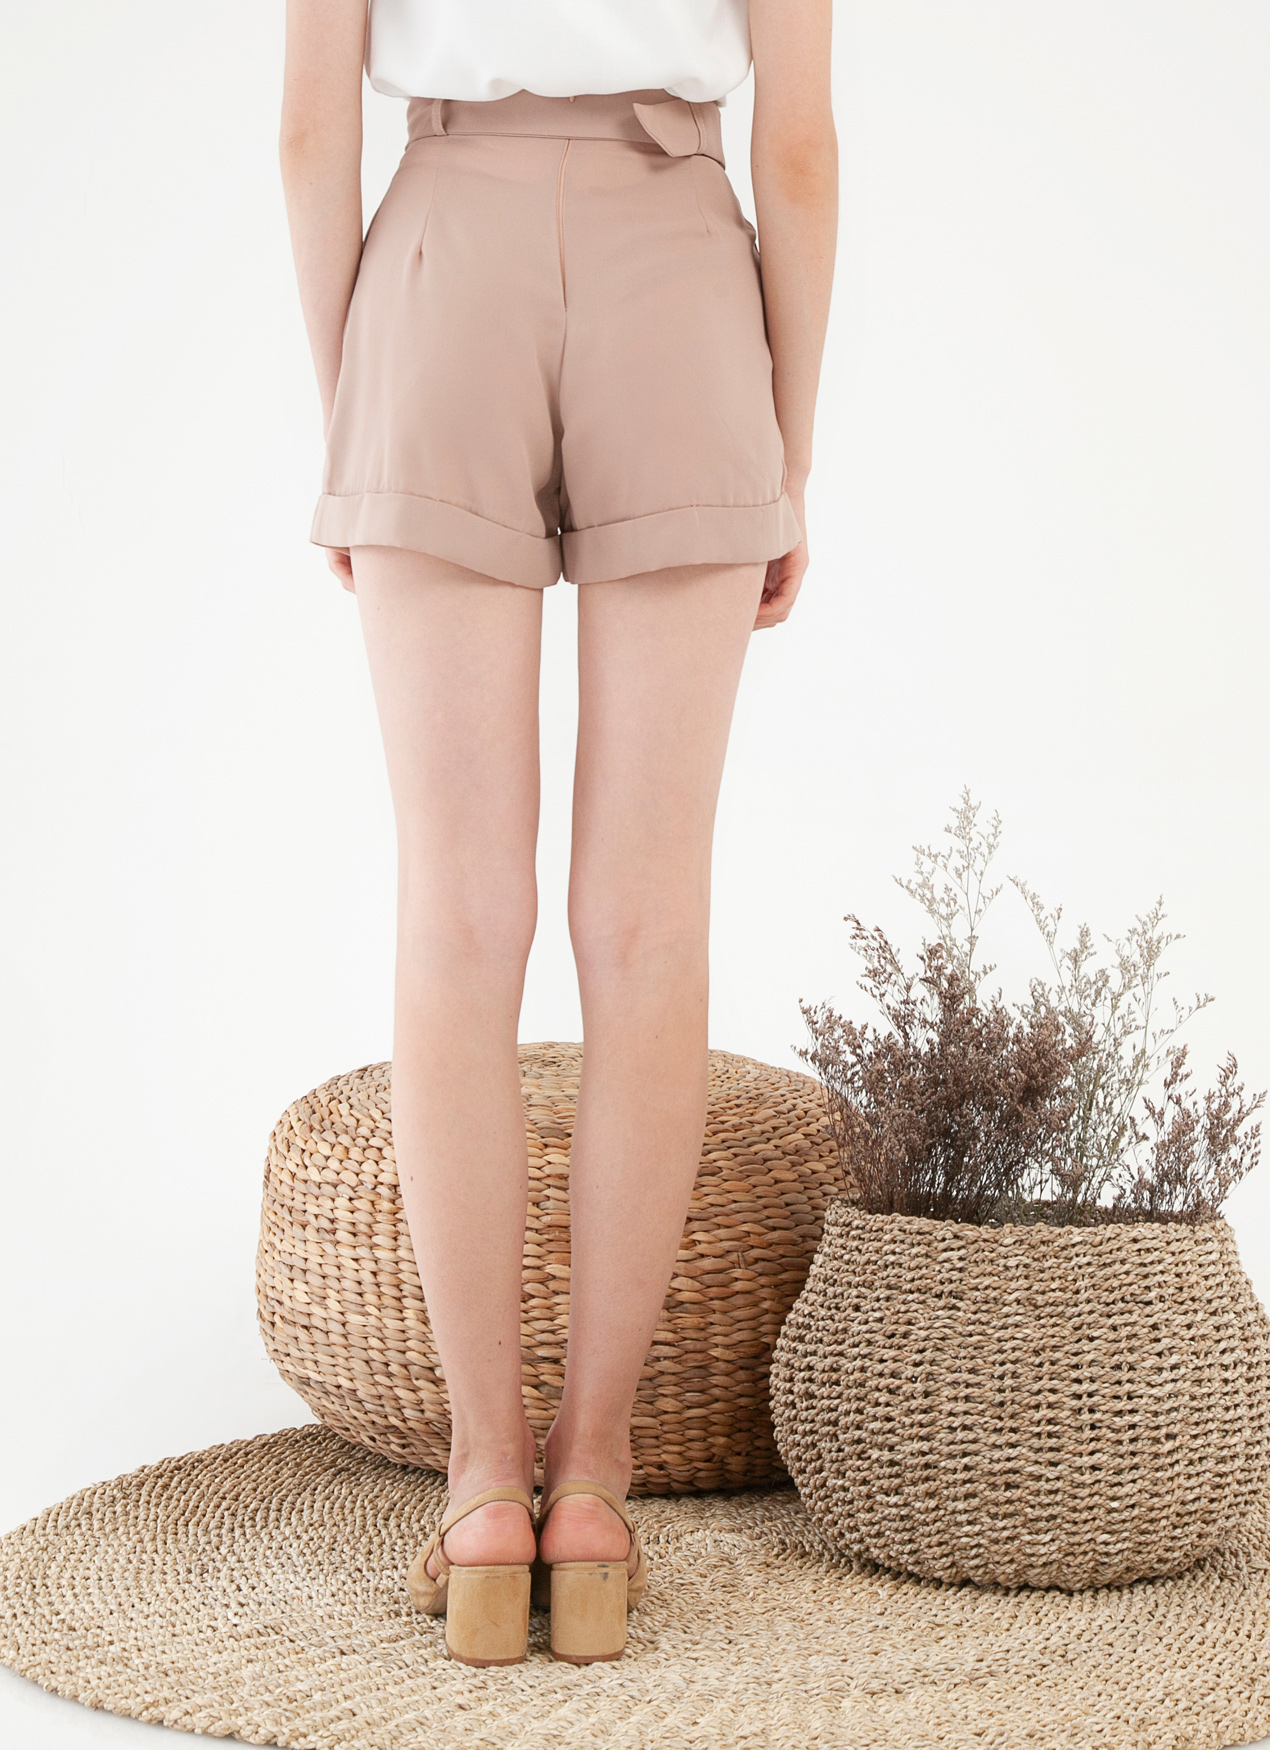 CLOTH INC Dorene Shorts - Dusty Rose